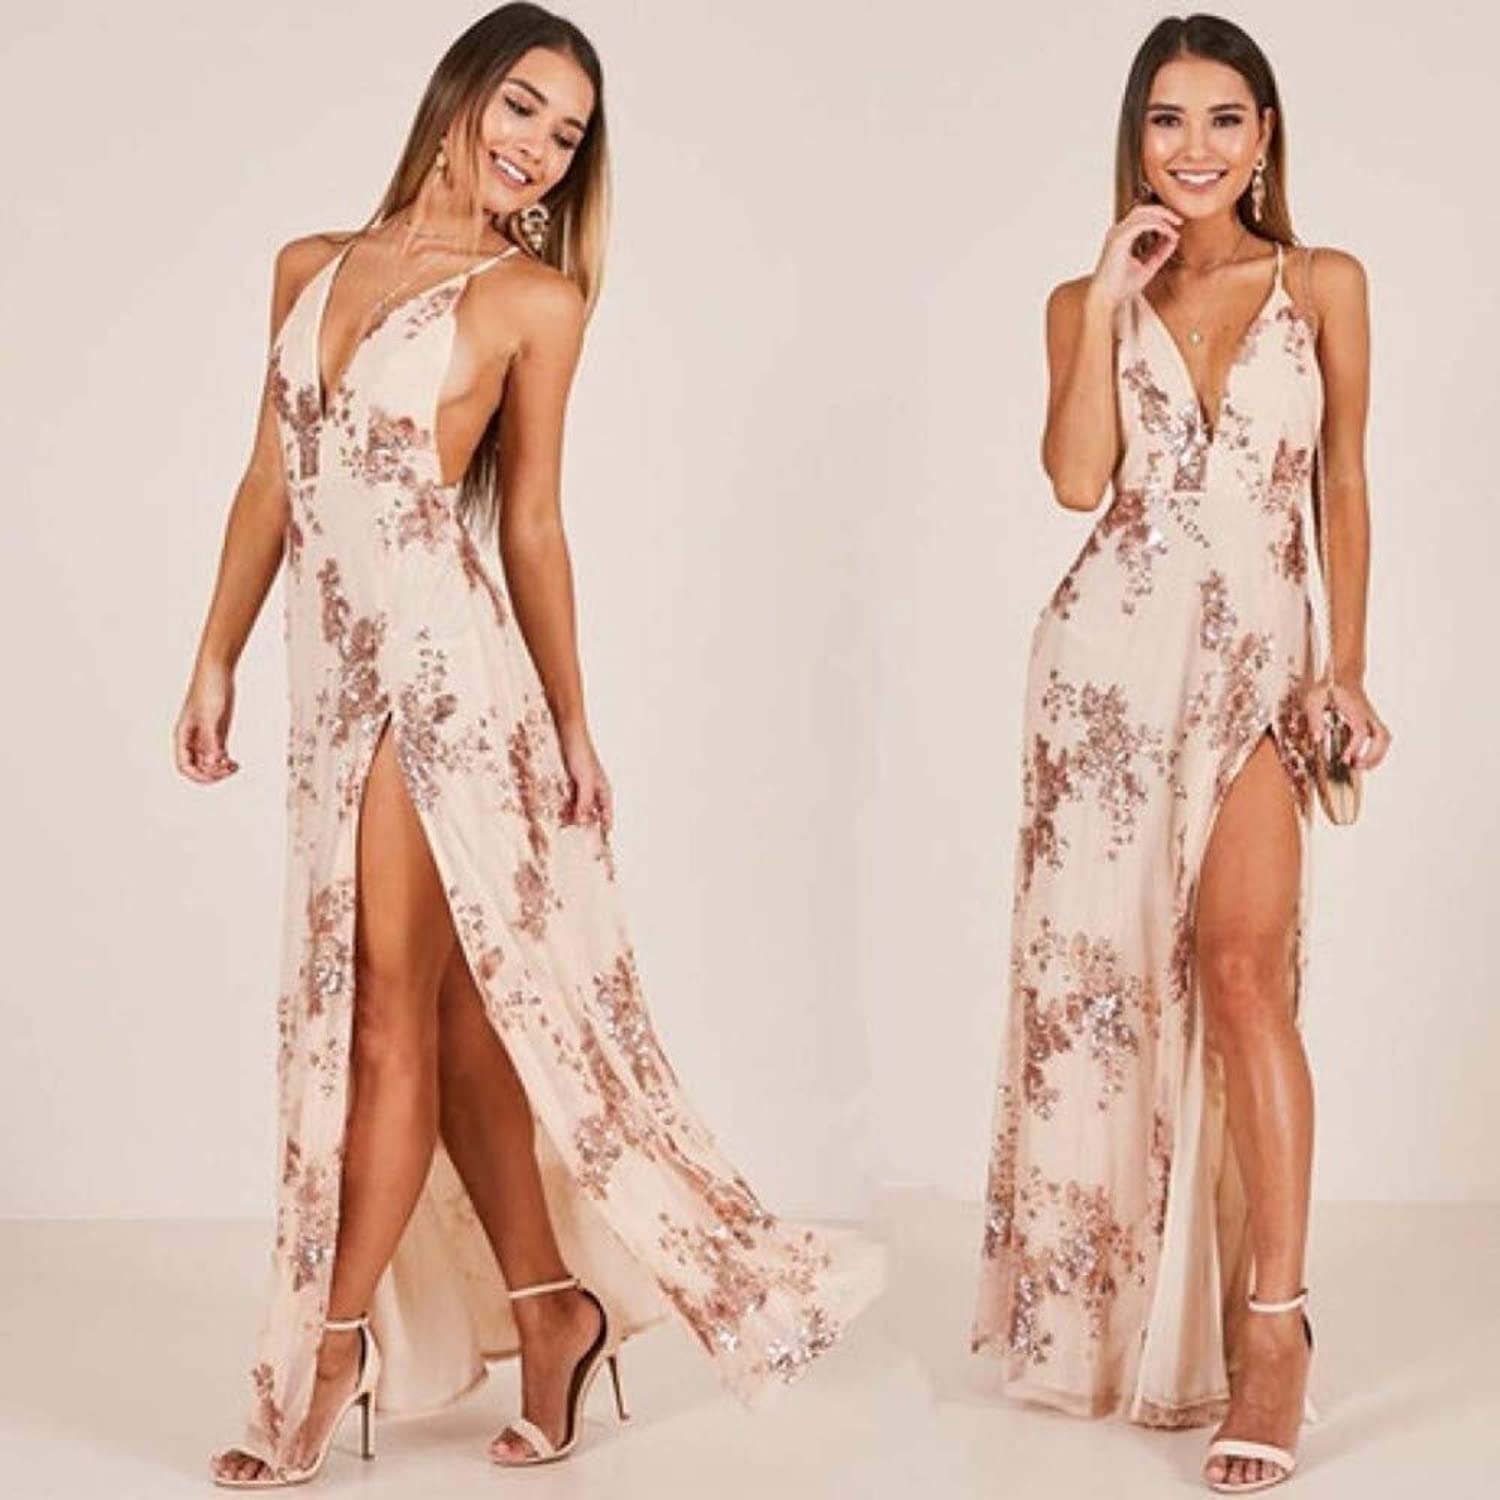 SPFAZJ 2019 Sequins Women's European and American Style Fashion Straps Deep VNeck Sexy Halter Jumpsuit High Slit Dress